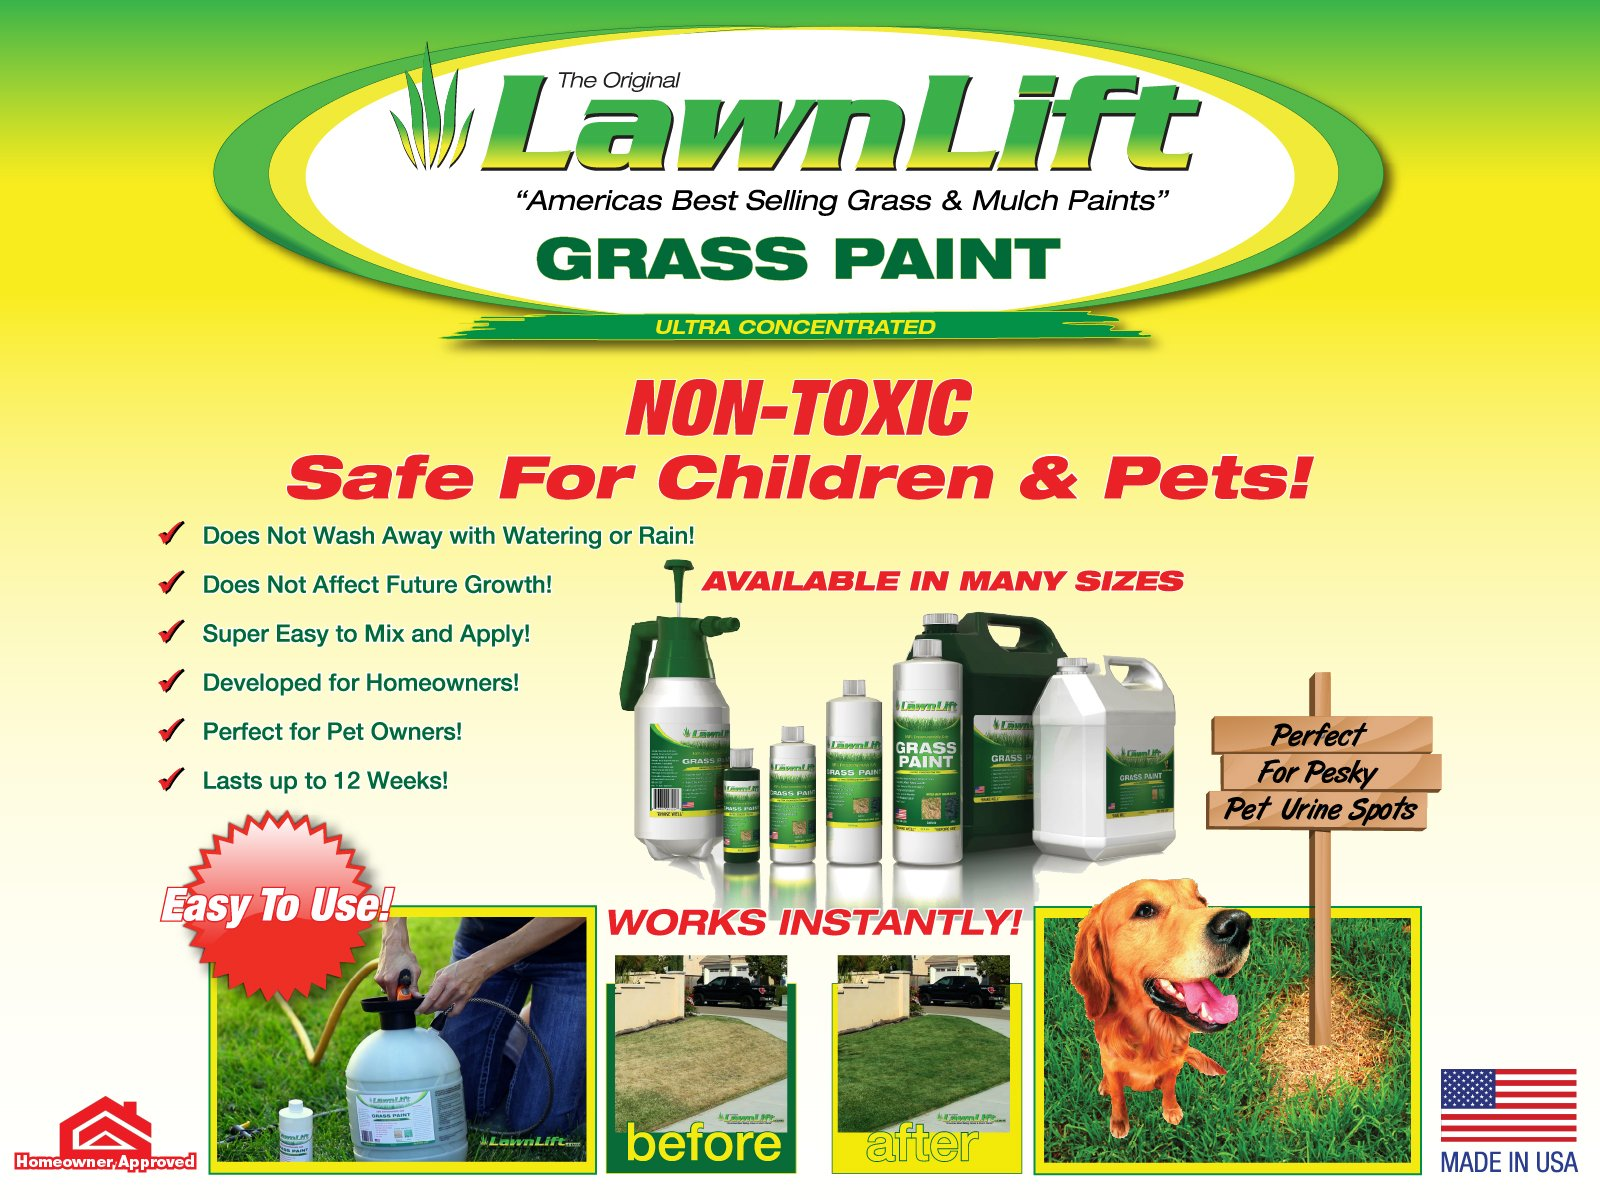 Lawnlift Ultra Concentrated (Green) Grass Paint 6 Gallon Case = 66 Gallons of Product covers 24,000 sq feet by LawnLift